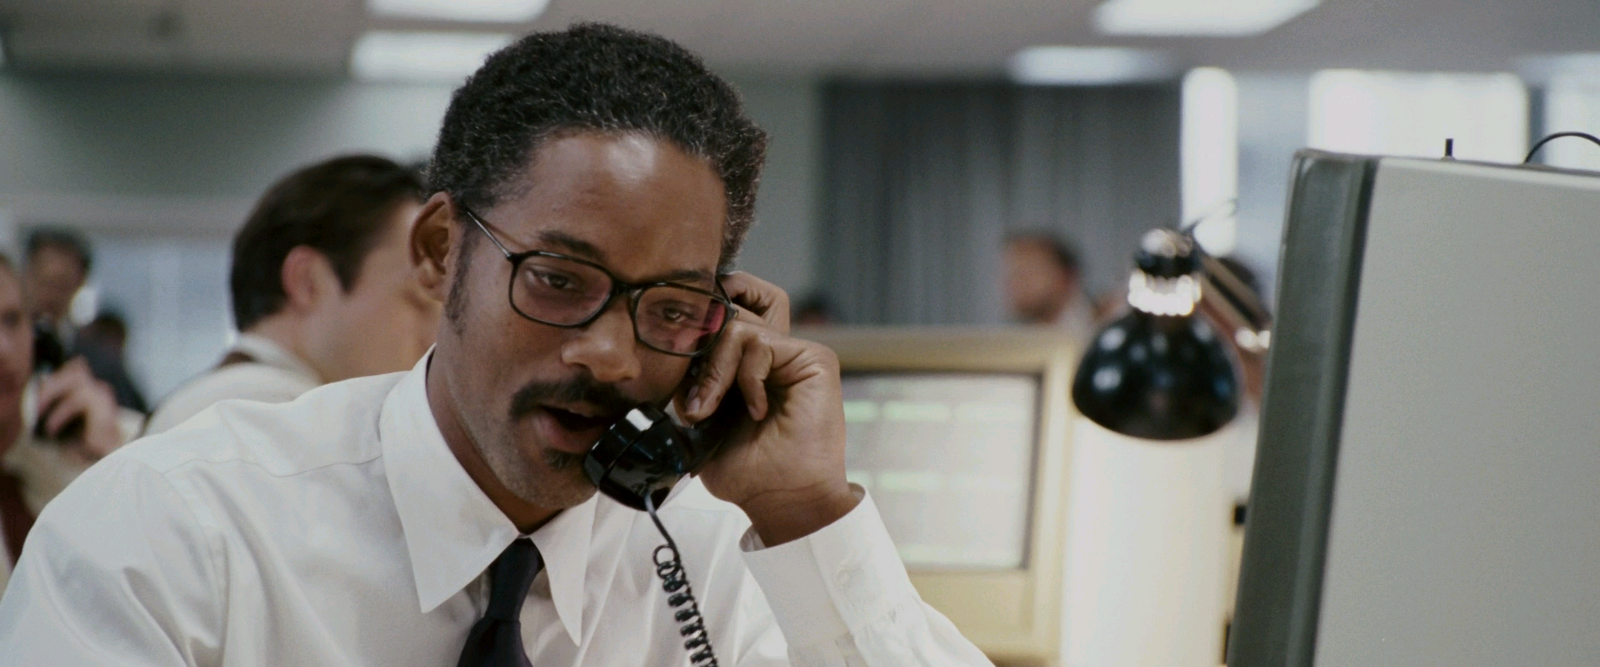 Chris Gardner / Will Smith (The Pursuit Of Happyness